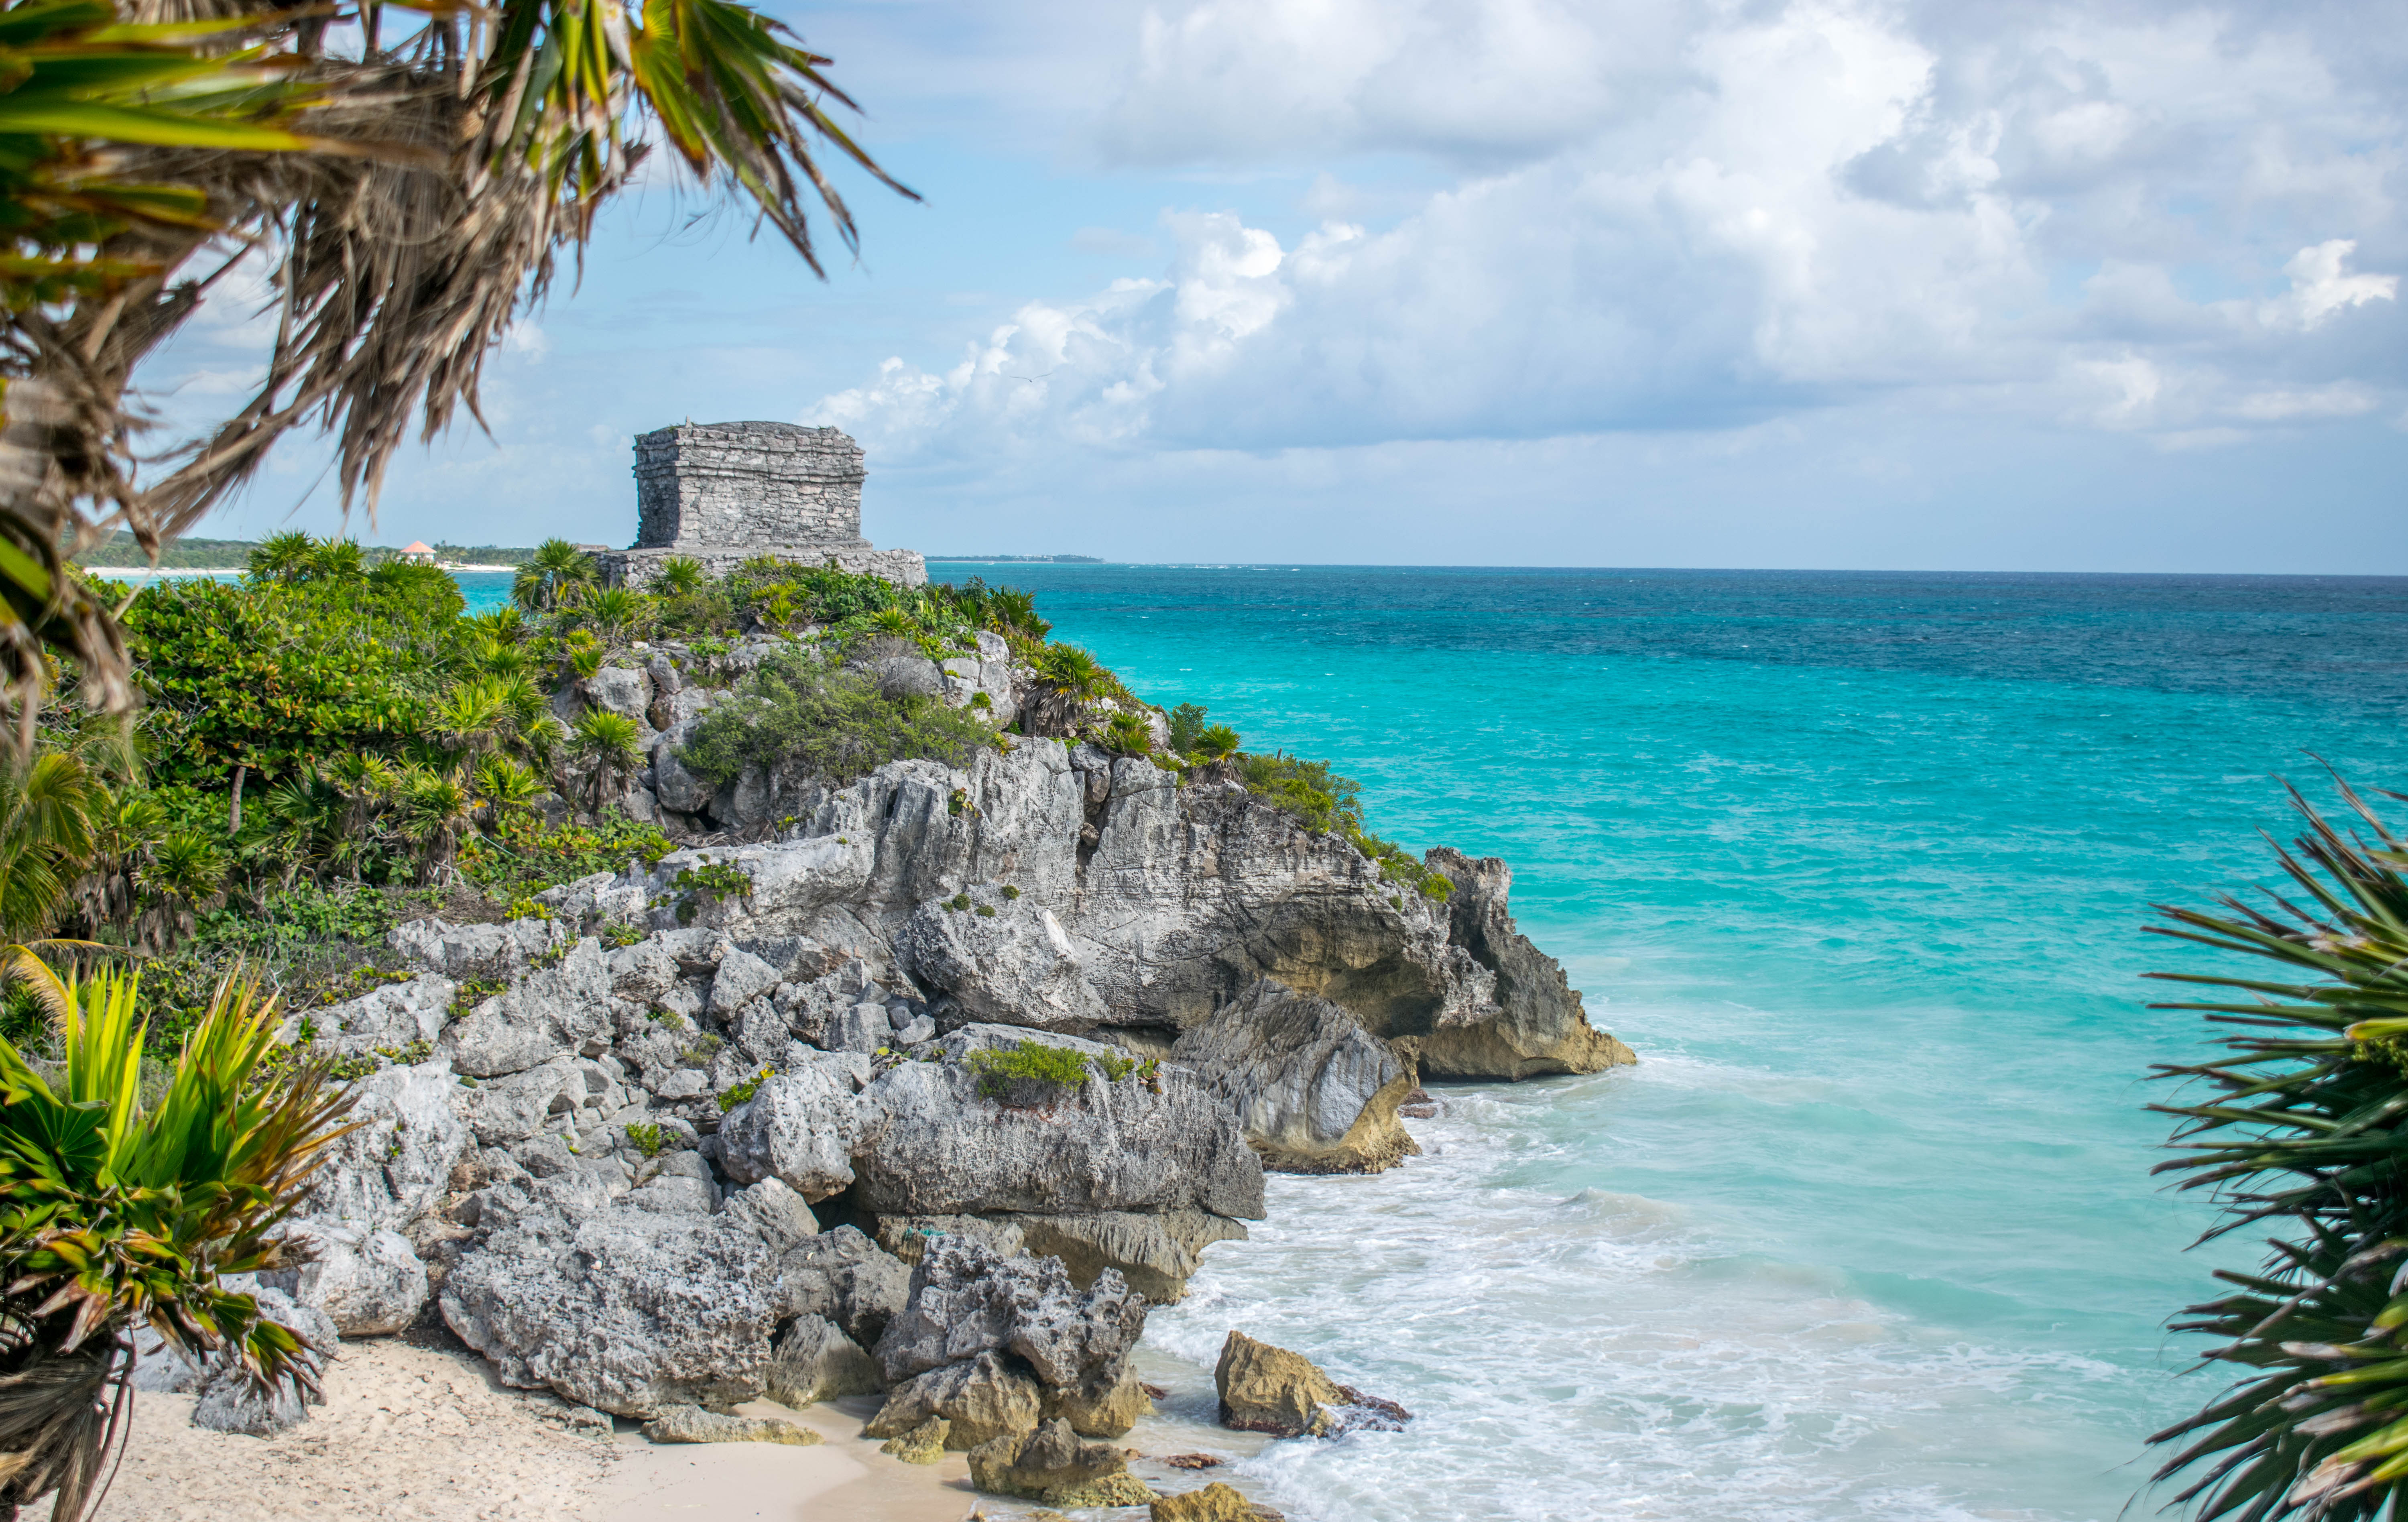 Tips for heading to the Yucatan!